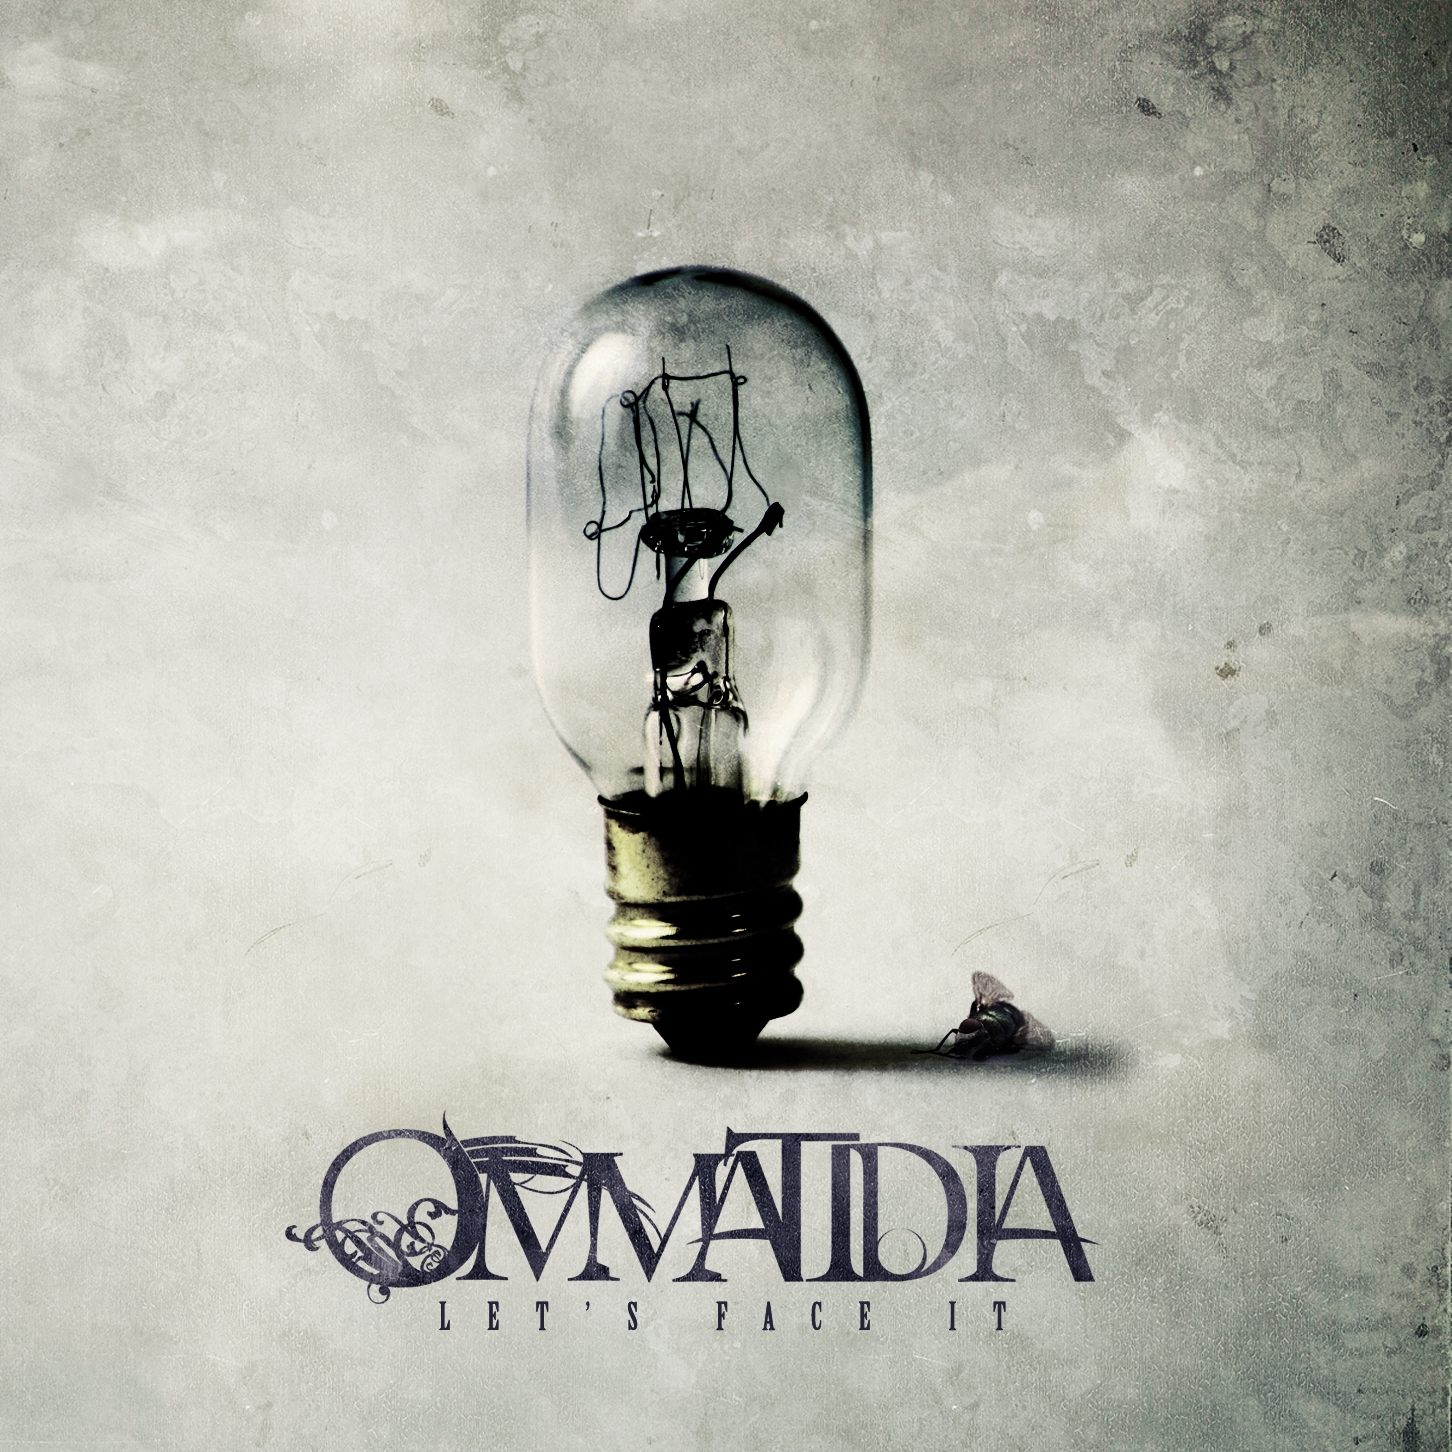 Ommatidia – Let's Face It